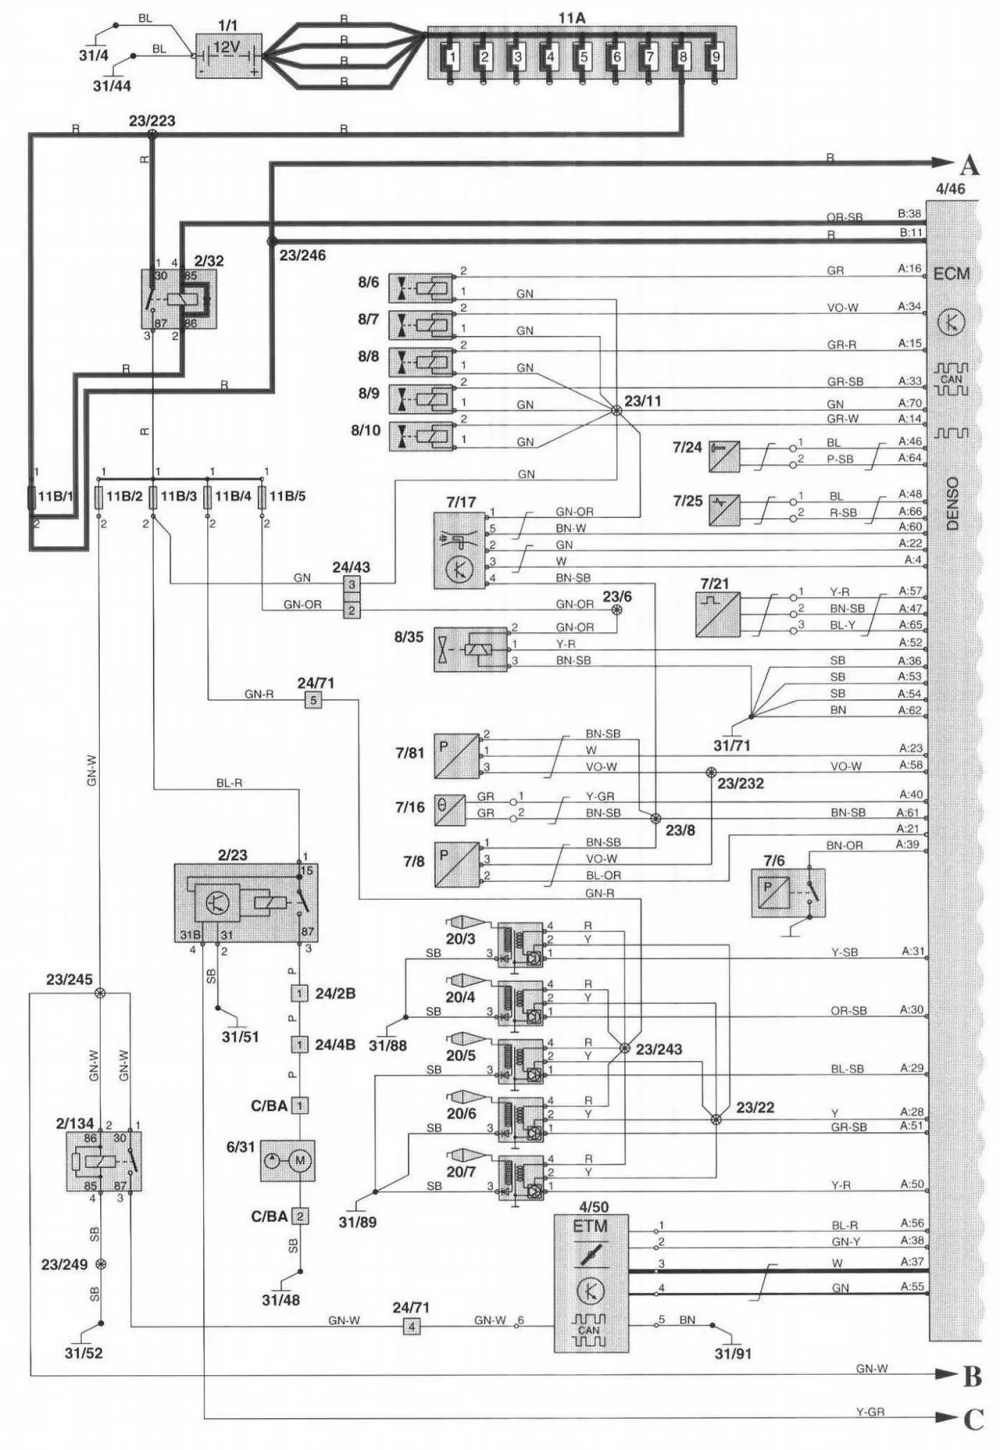 medium resolution of 2003 volvo fuse diagram wiring diagram expert 2005 volvo v70 wiring diagram 2003 volvo s40 fuse